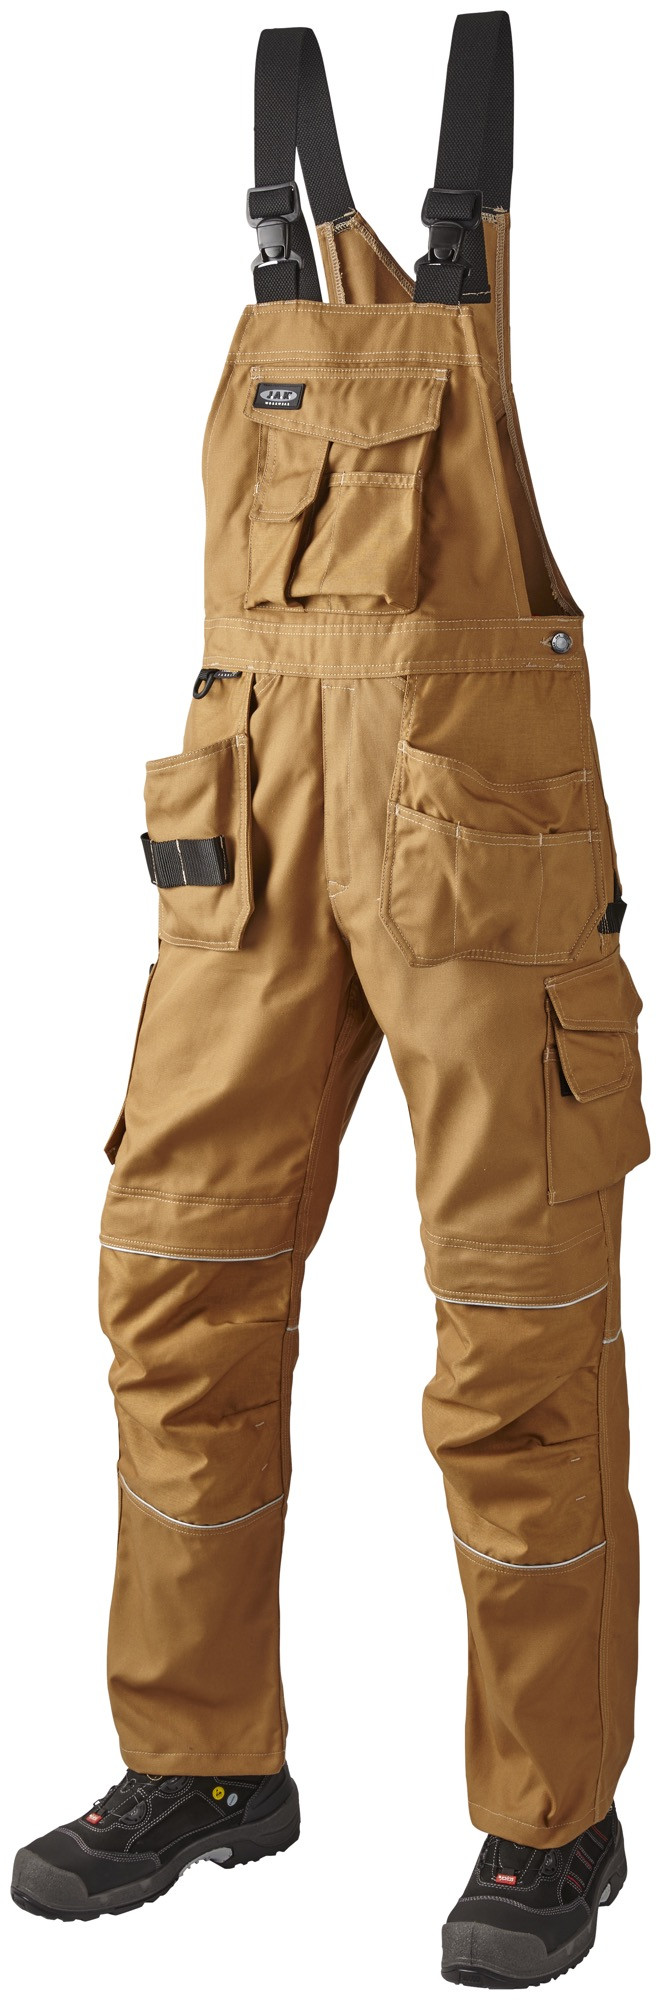 Arbejds Overall, Canvas, 1503 -  Camel